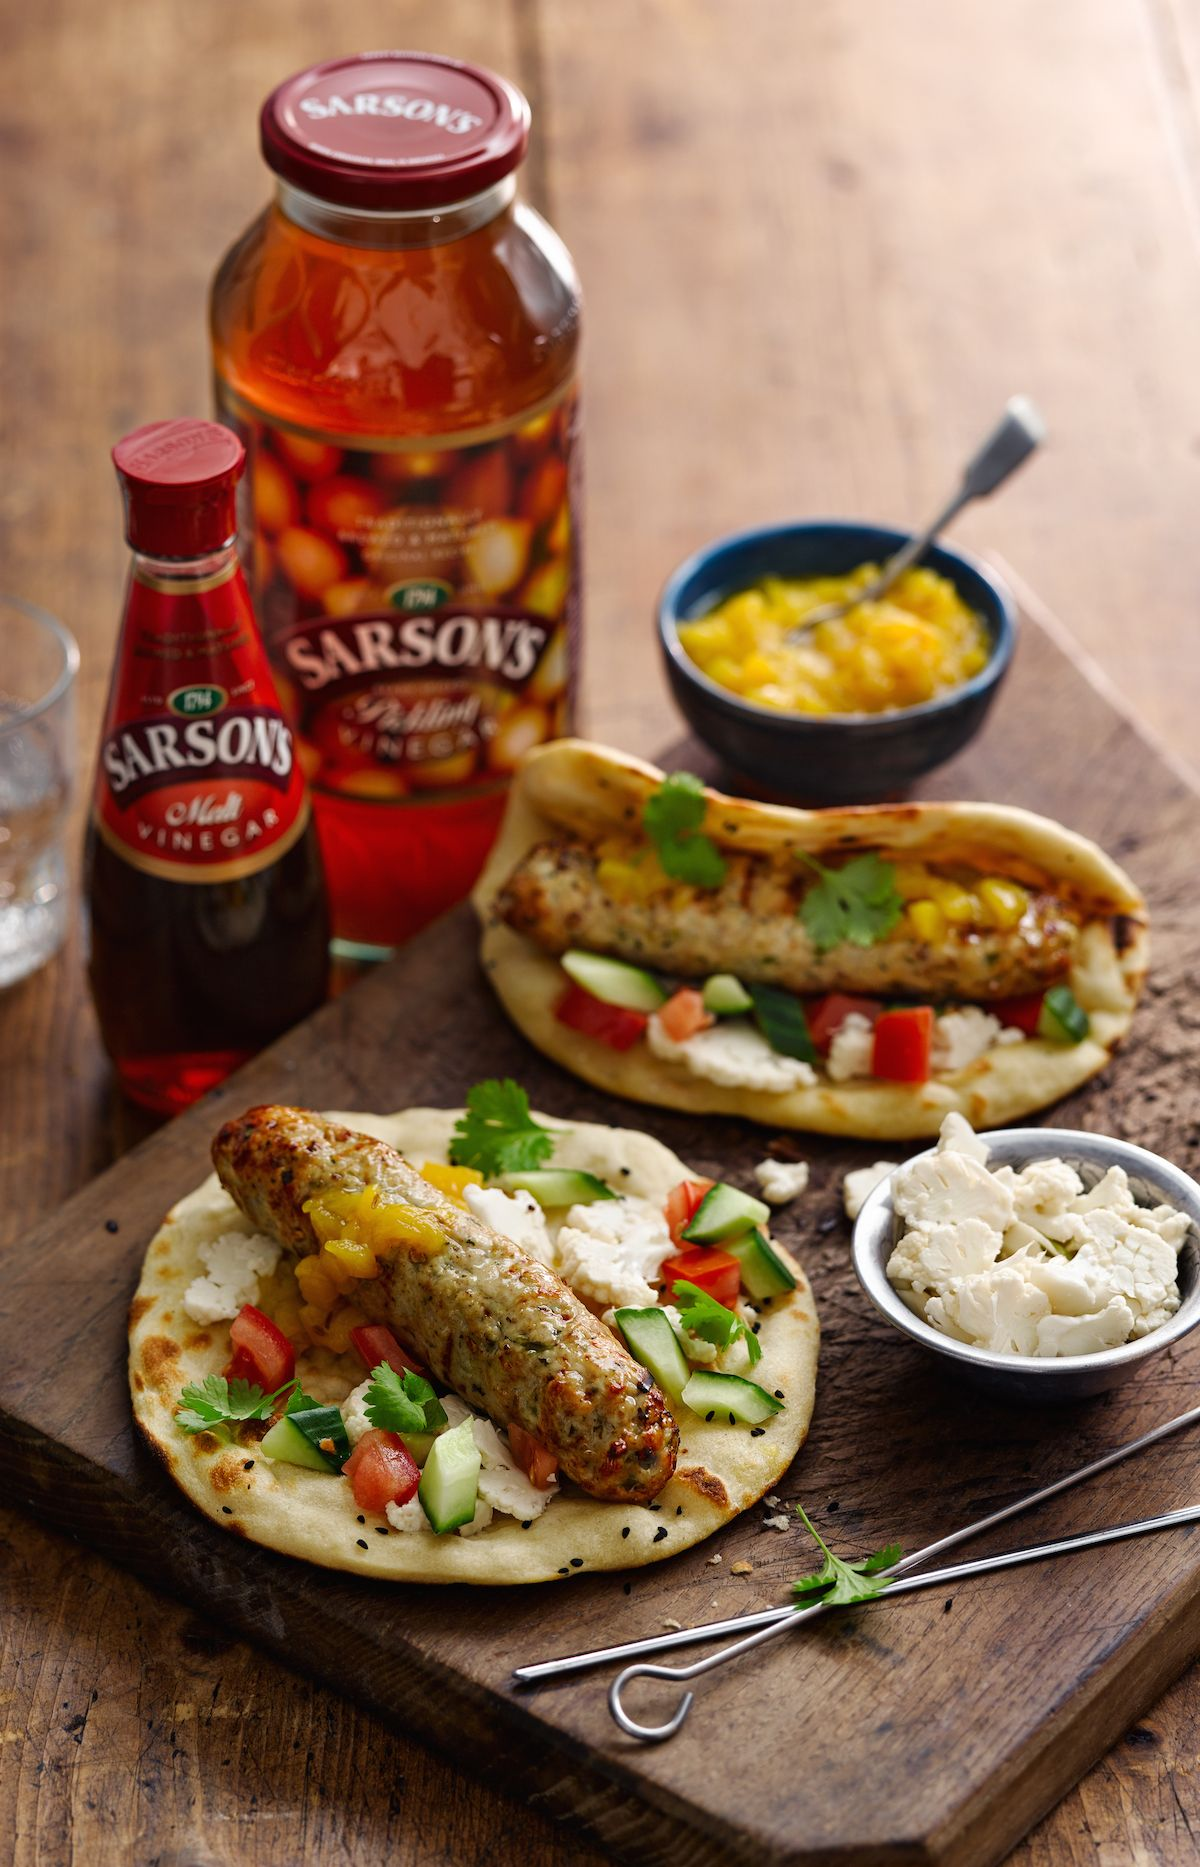 This chicken seekh kebab with home made mango chutney is ready in 15 this chicken seekh kebab with home made mango chutney is ready in 15 minutes a forumfinder Images